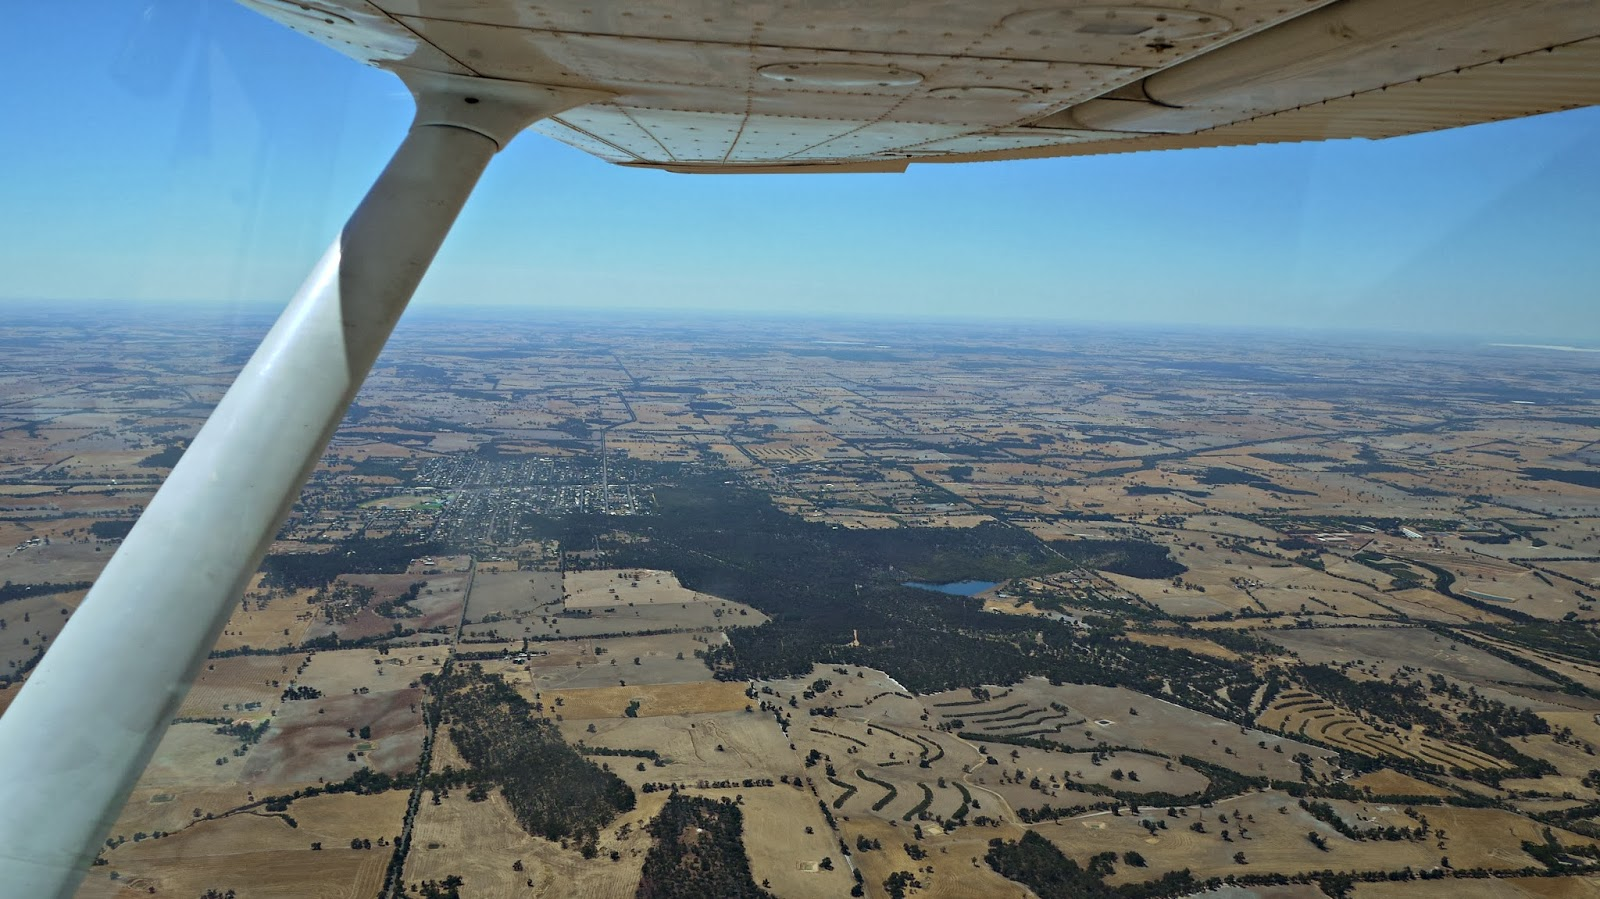 View of Narrogin from small light aircraft